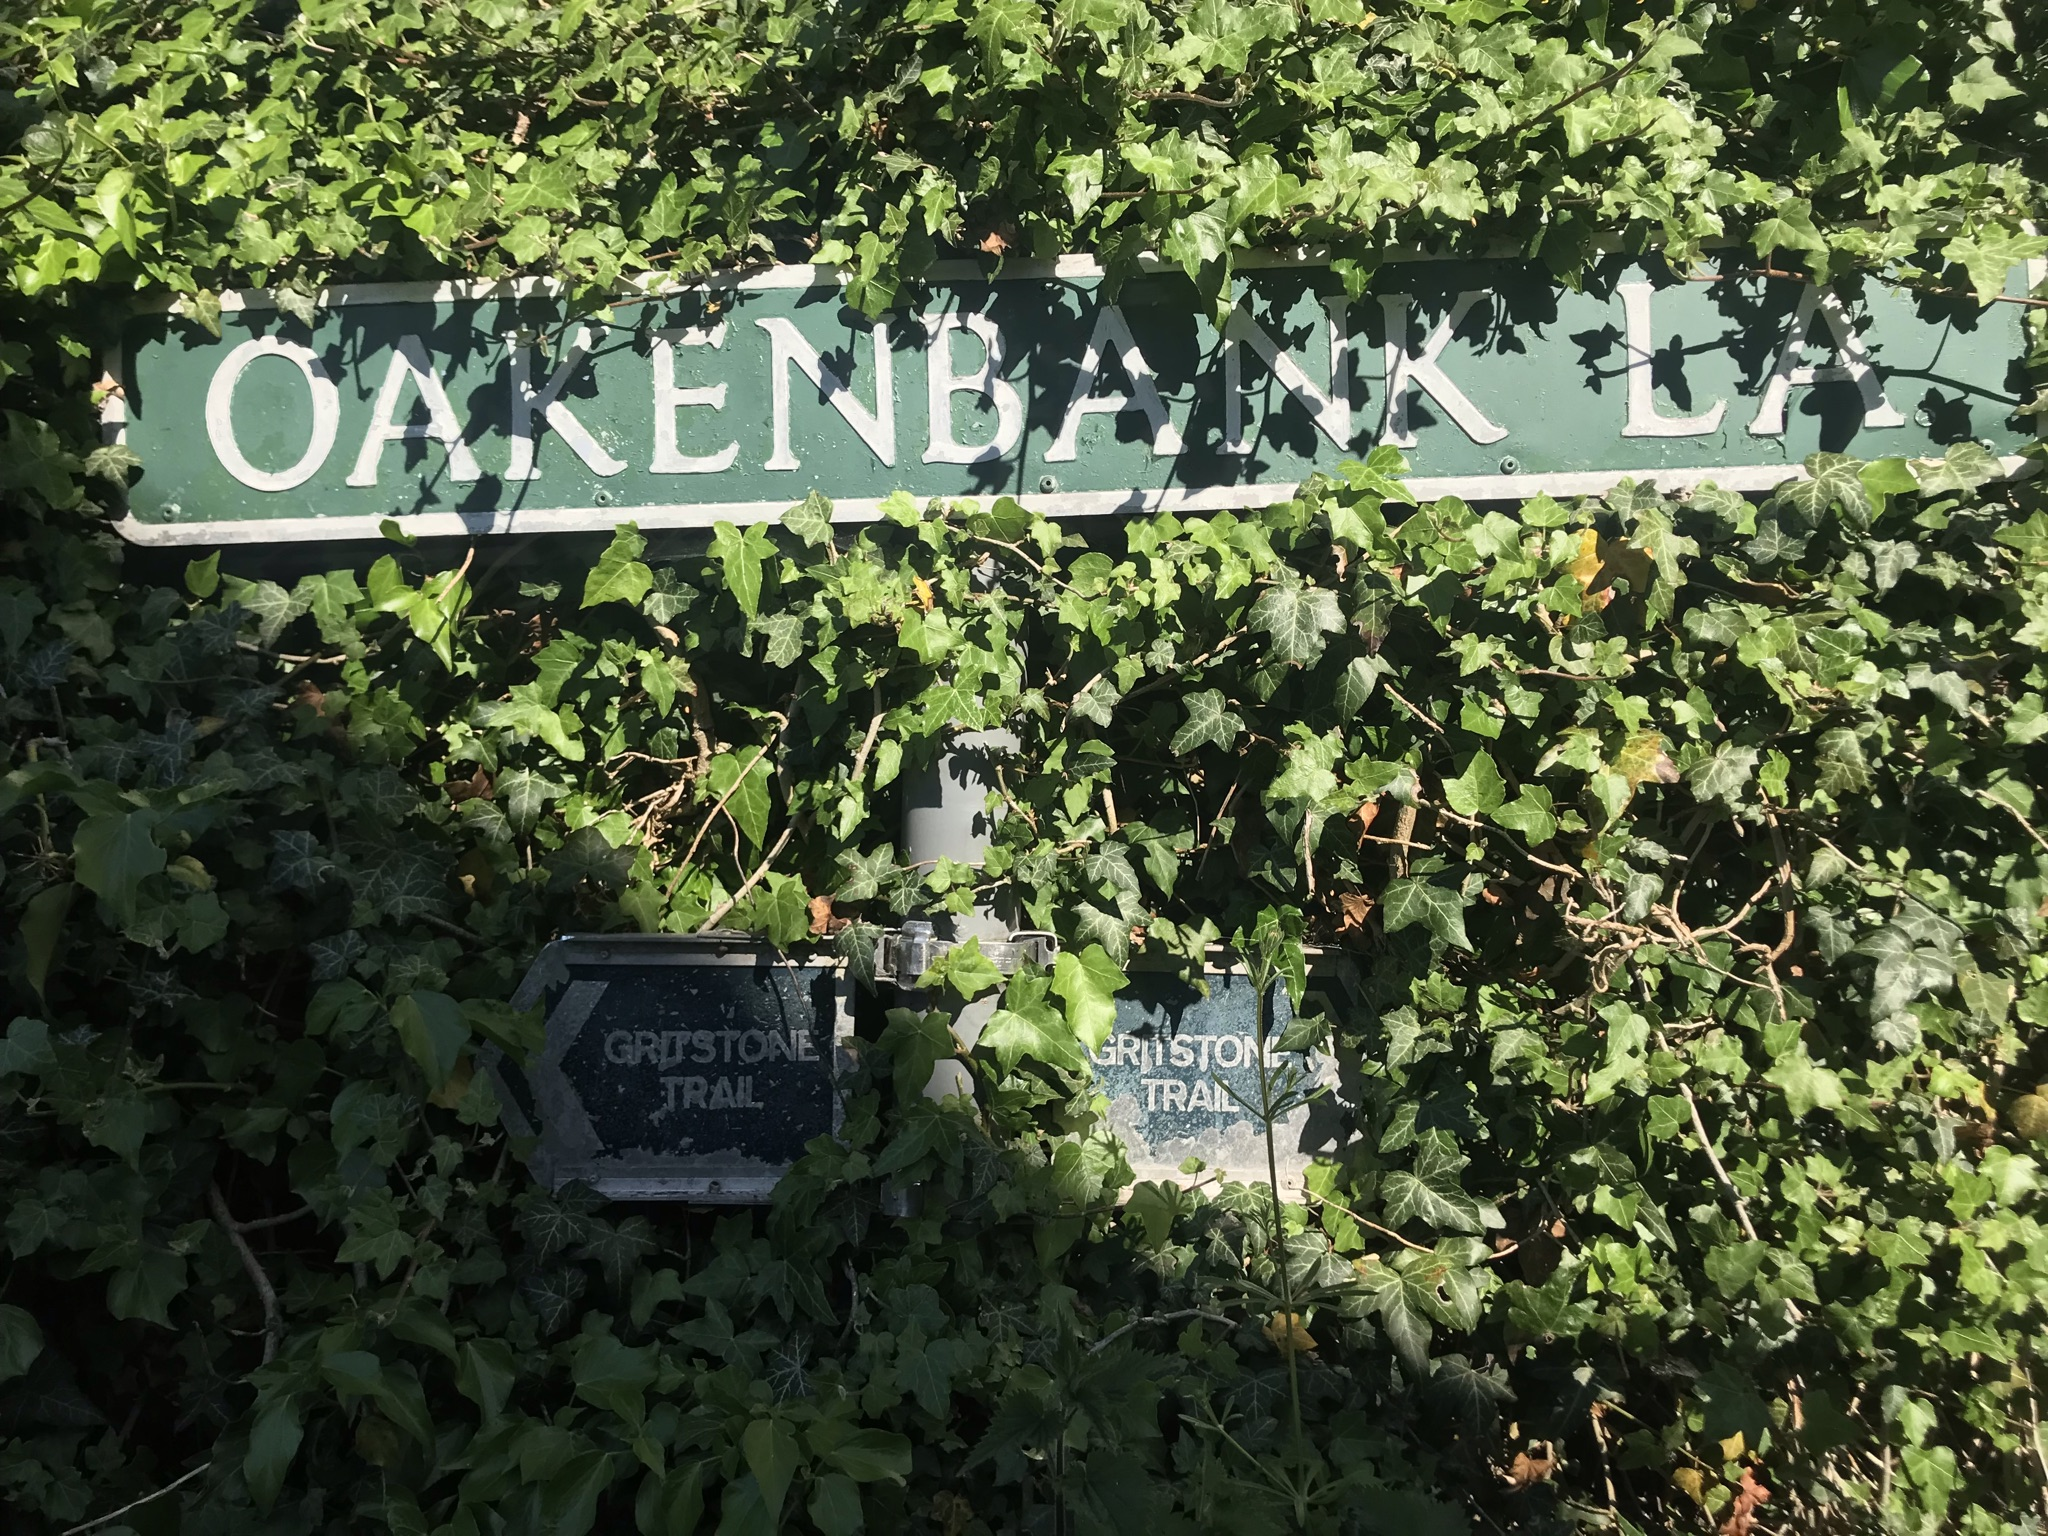 Old work metal signs for the gritstone trail are half hidden in ivy. A shadow is cast across the ivy.